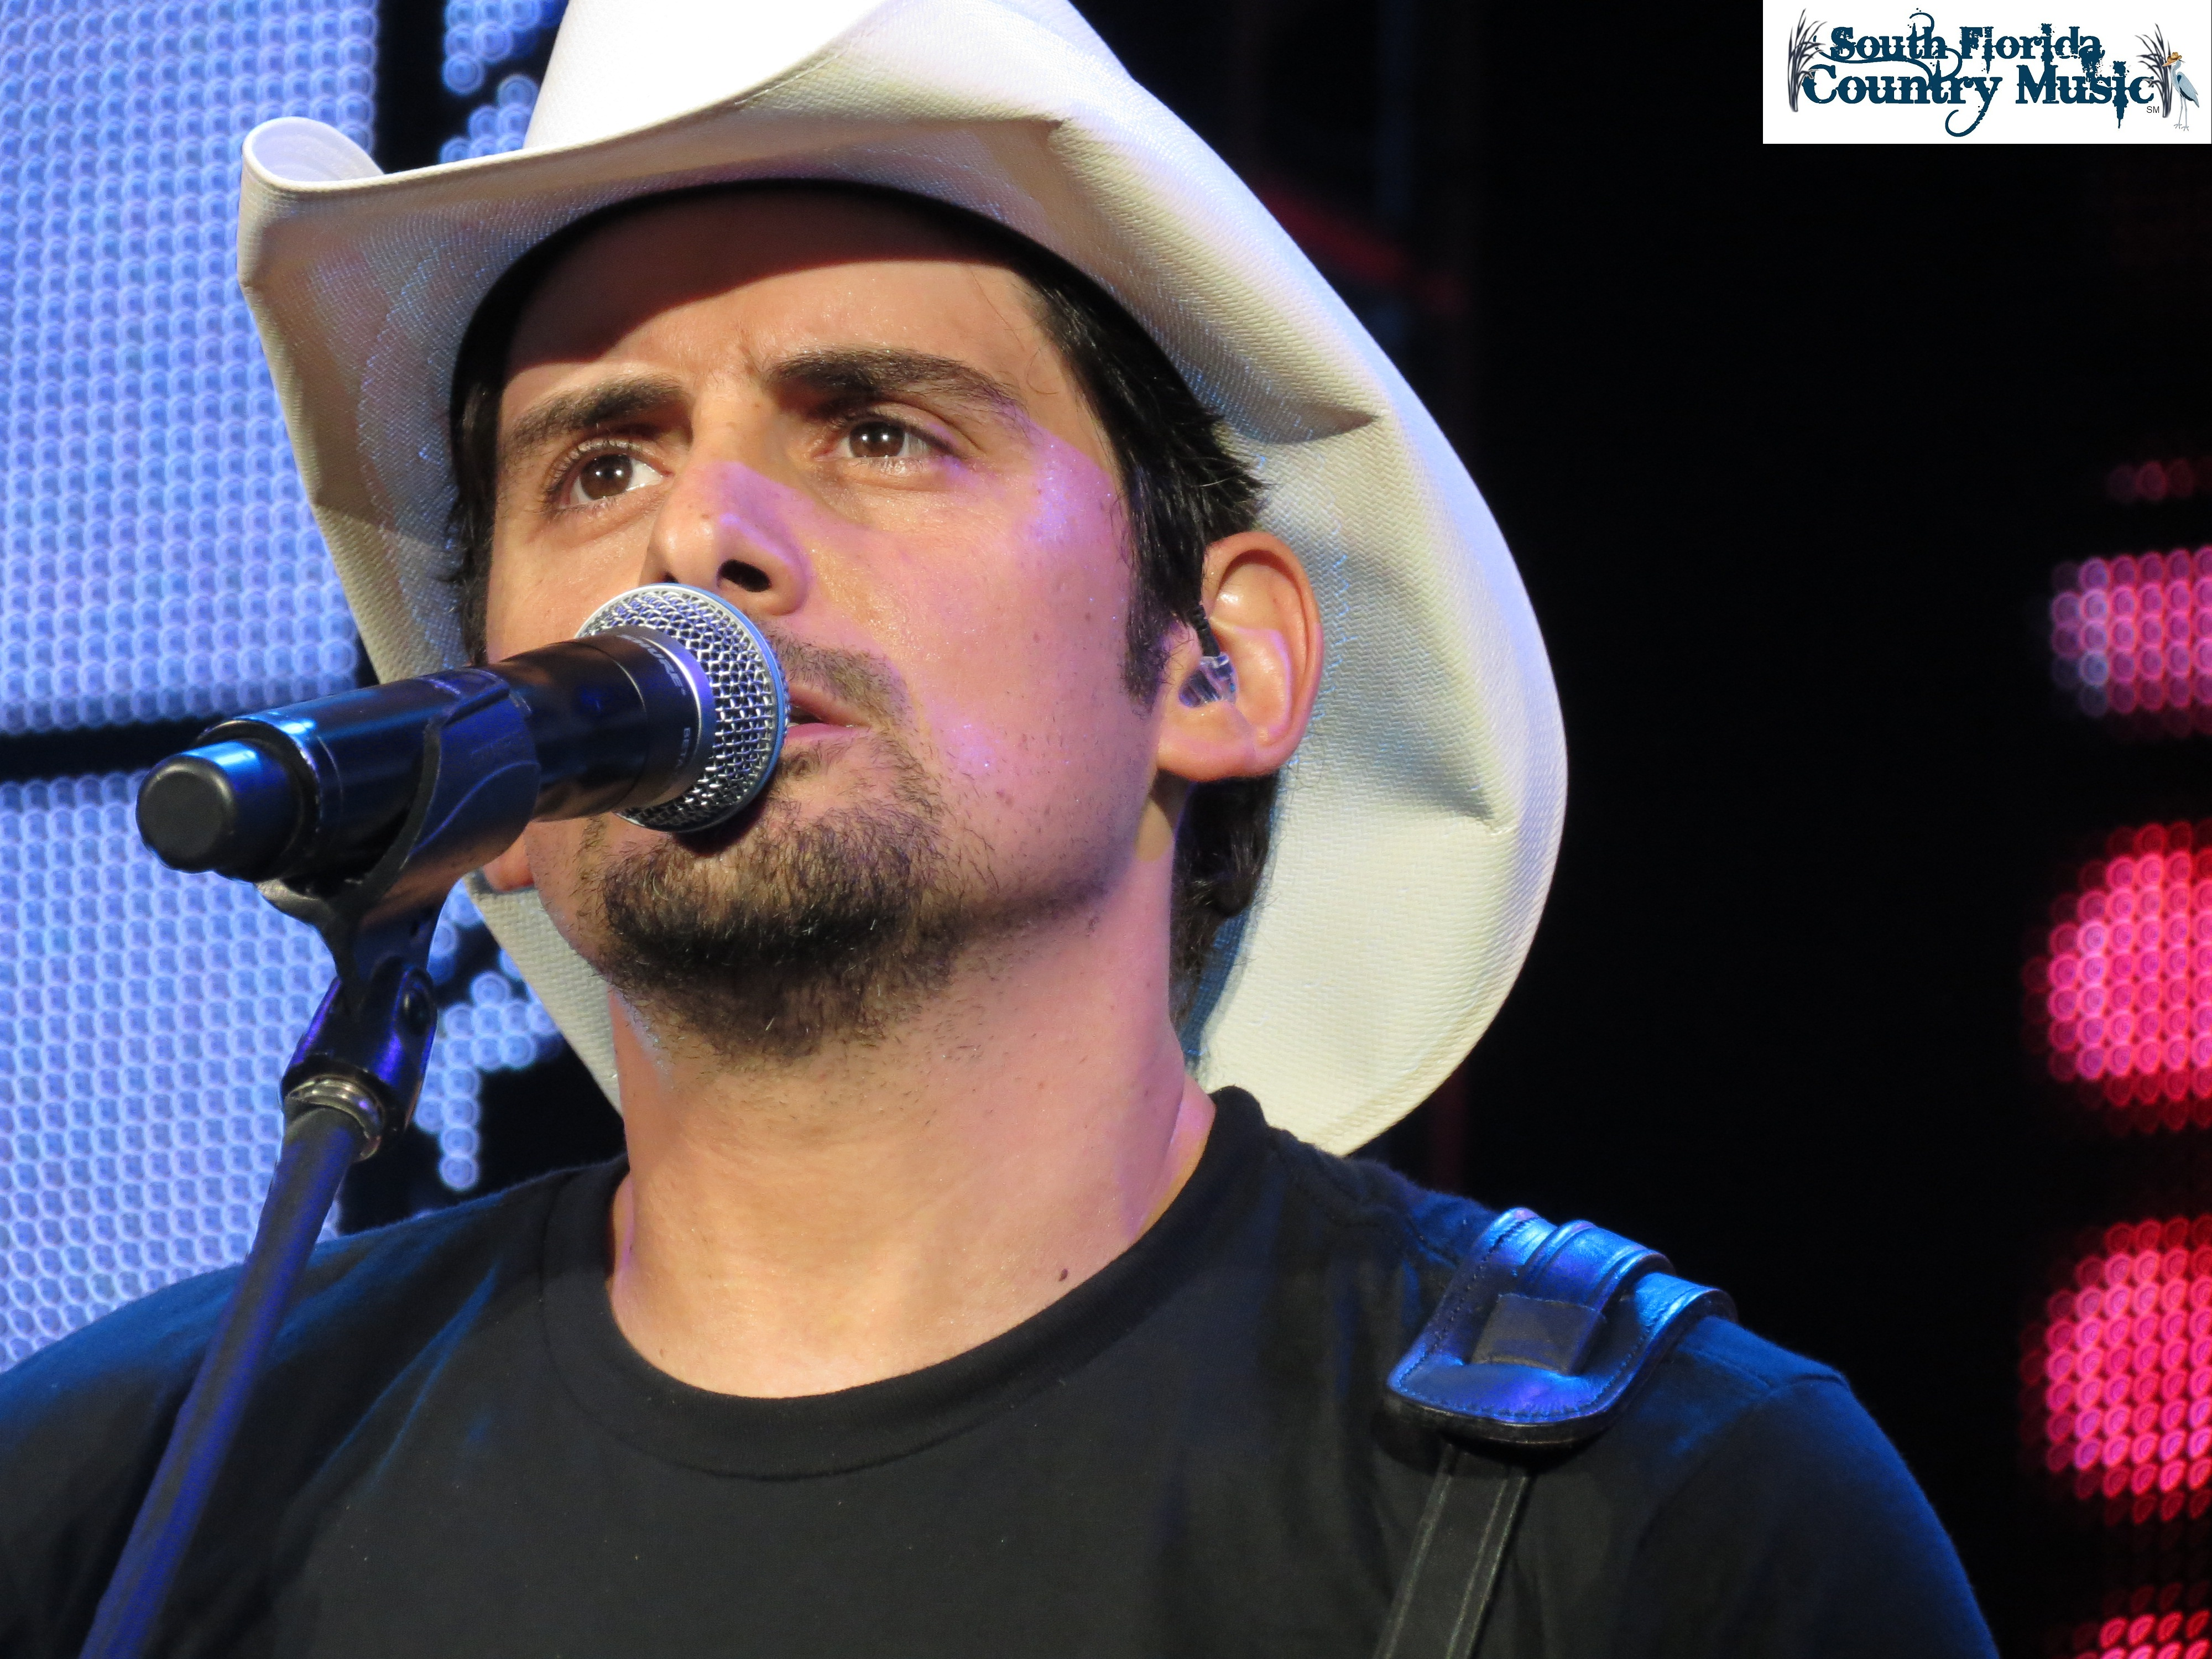 brad paisley i cant change the world Watch brad paisley's videos on myspace, a place where people come to connect, discover, and share i can't change the world - lyric video brad paisley 4:41 plays143.